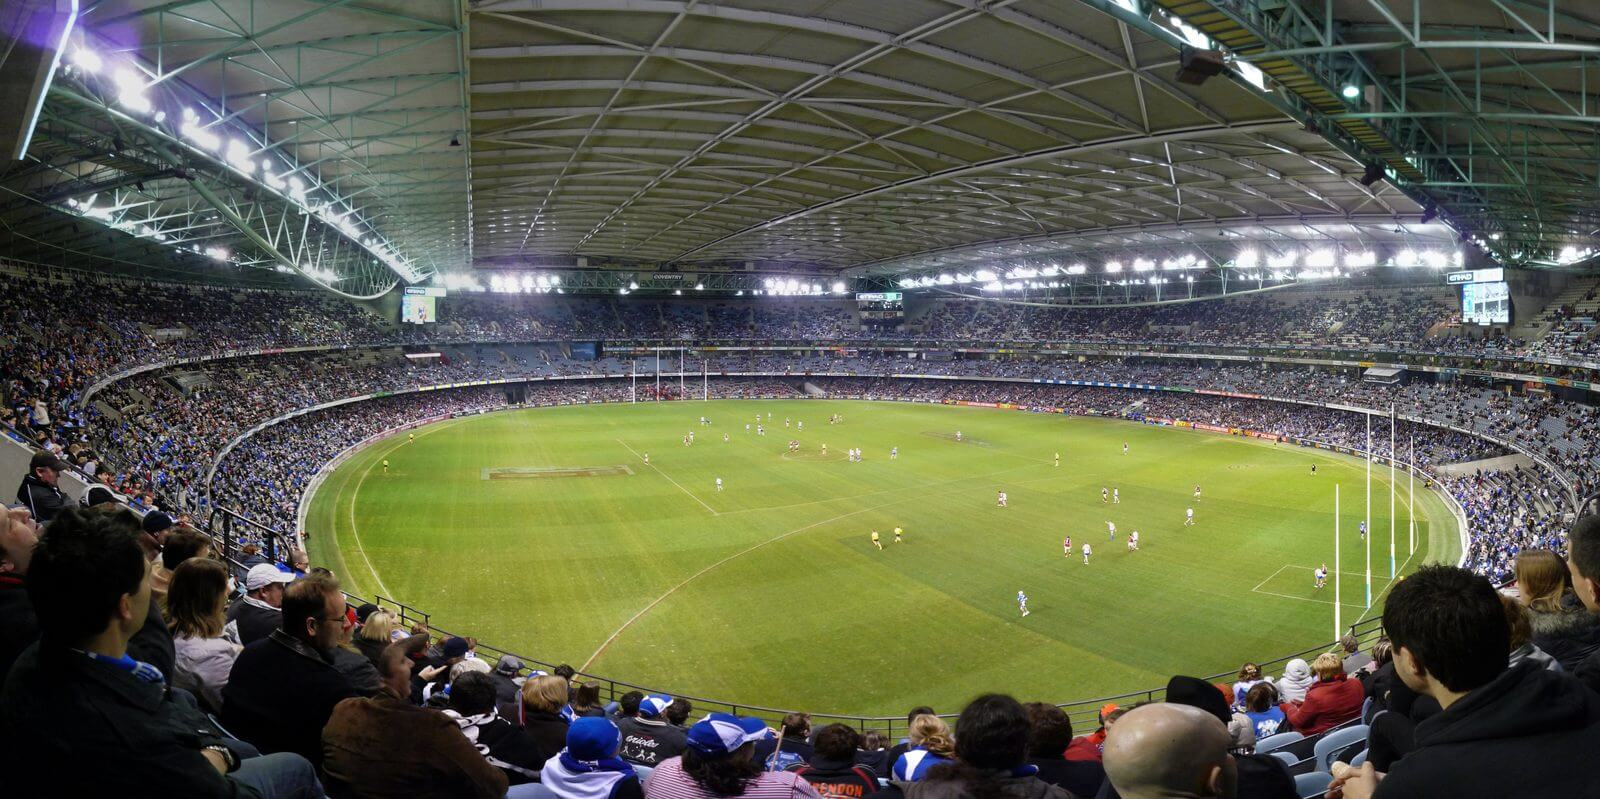 Docklands Stadium TOP 10 LARGEST CRICKET STADIUMS IN THE WORLD